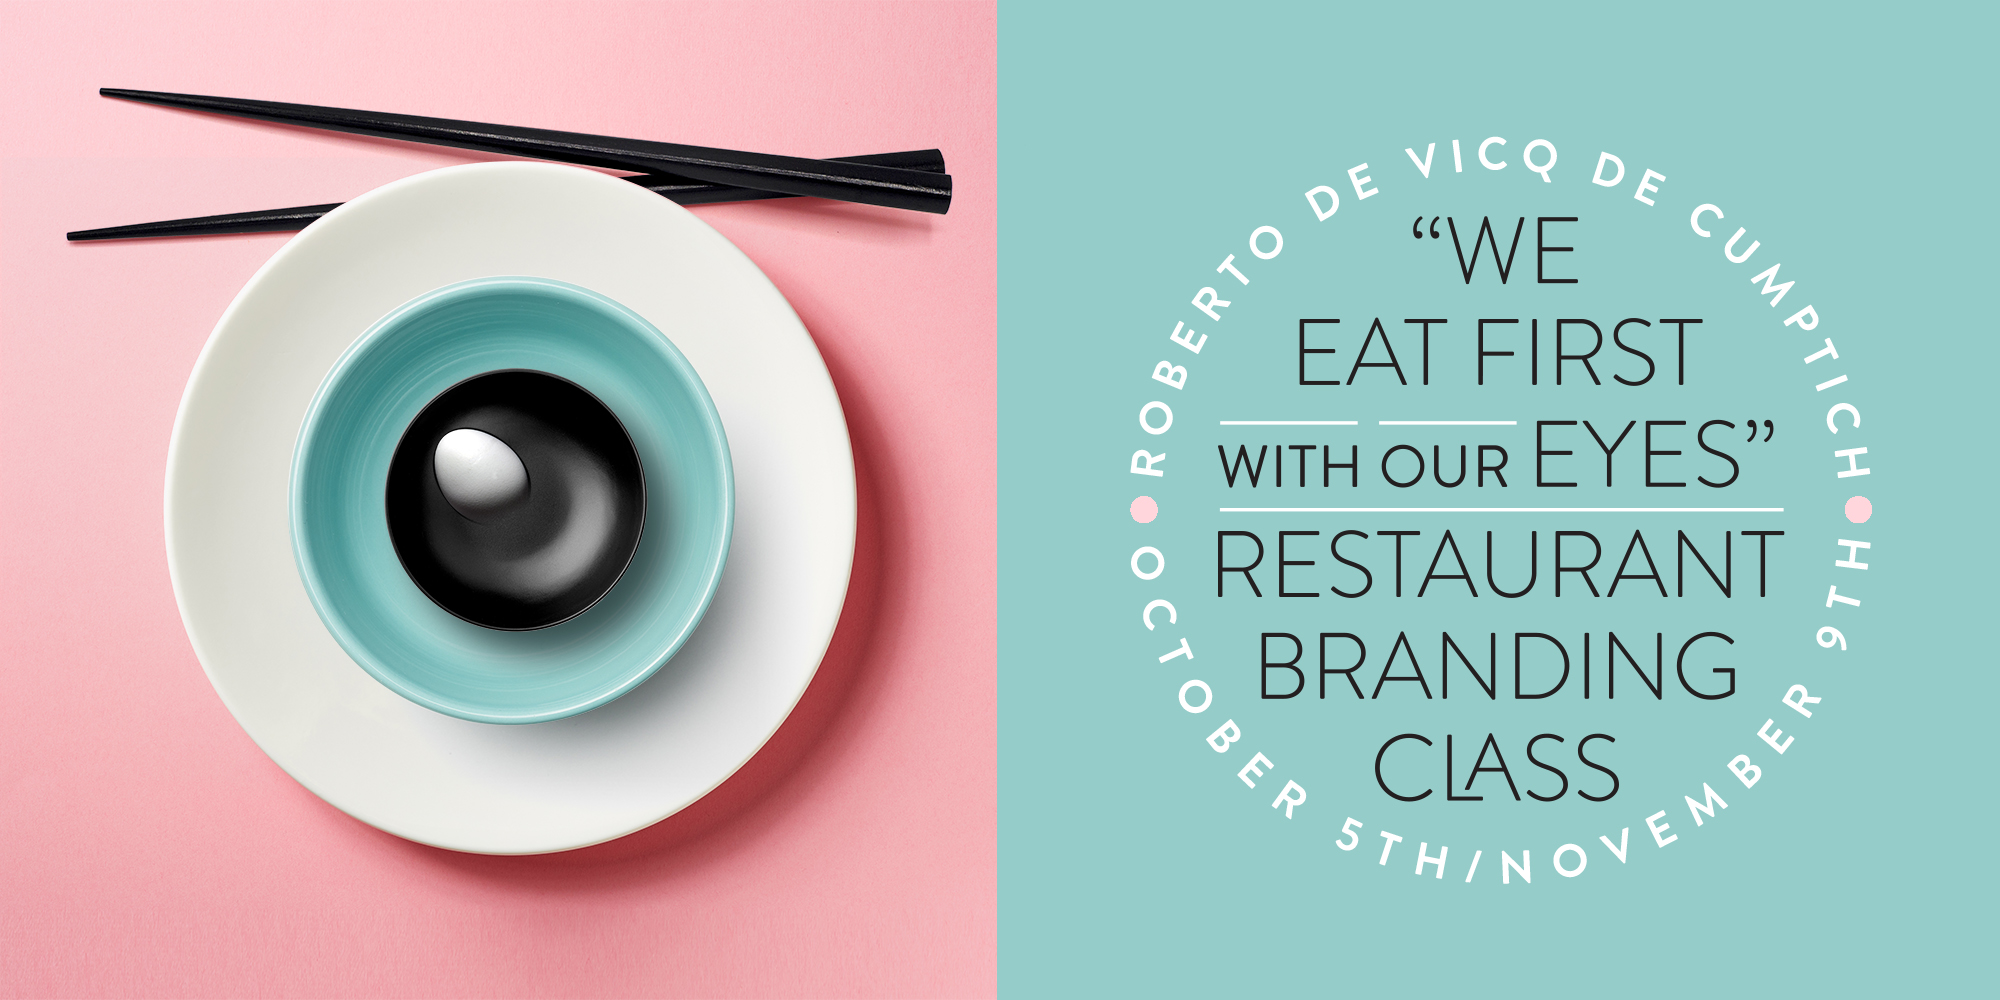 Restaurant Branding: We Eat First With Our Eyes